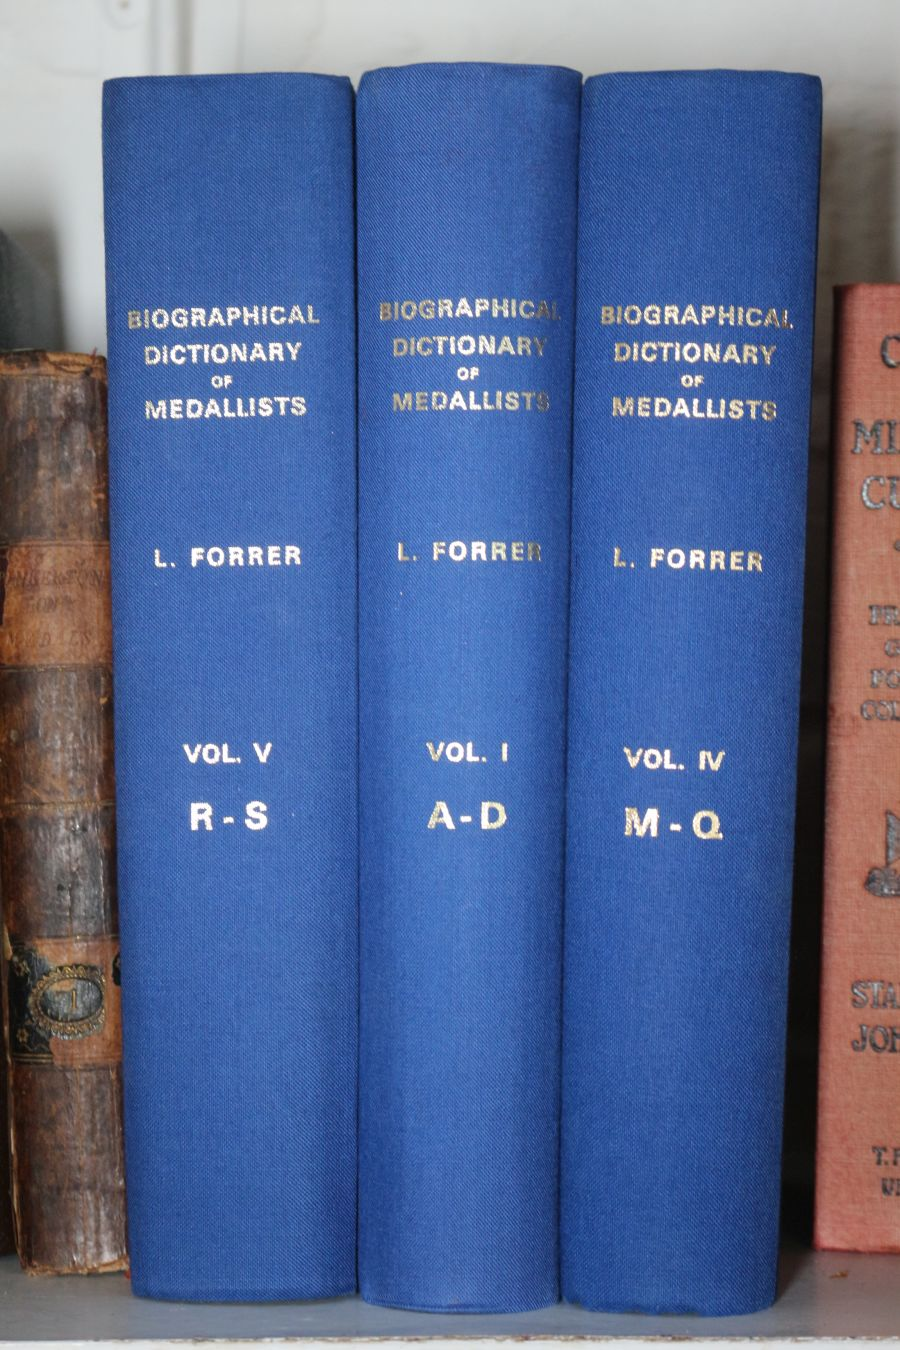 Biographical dictionary of medallists by L.Forrer, Volumes I, IV and V